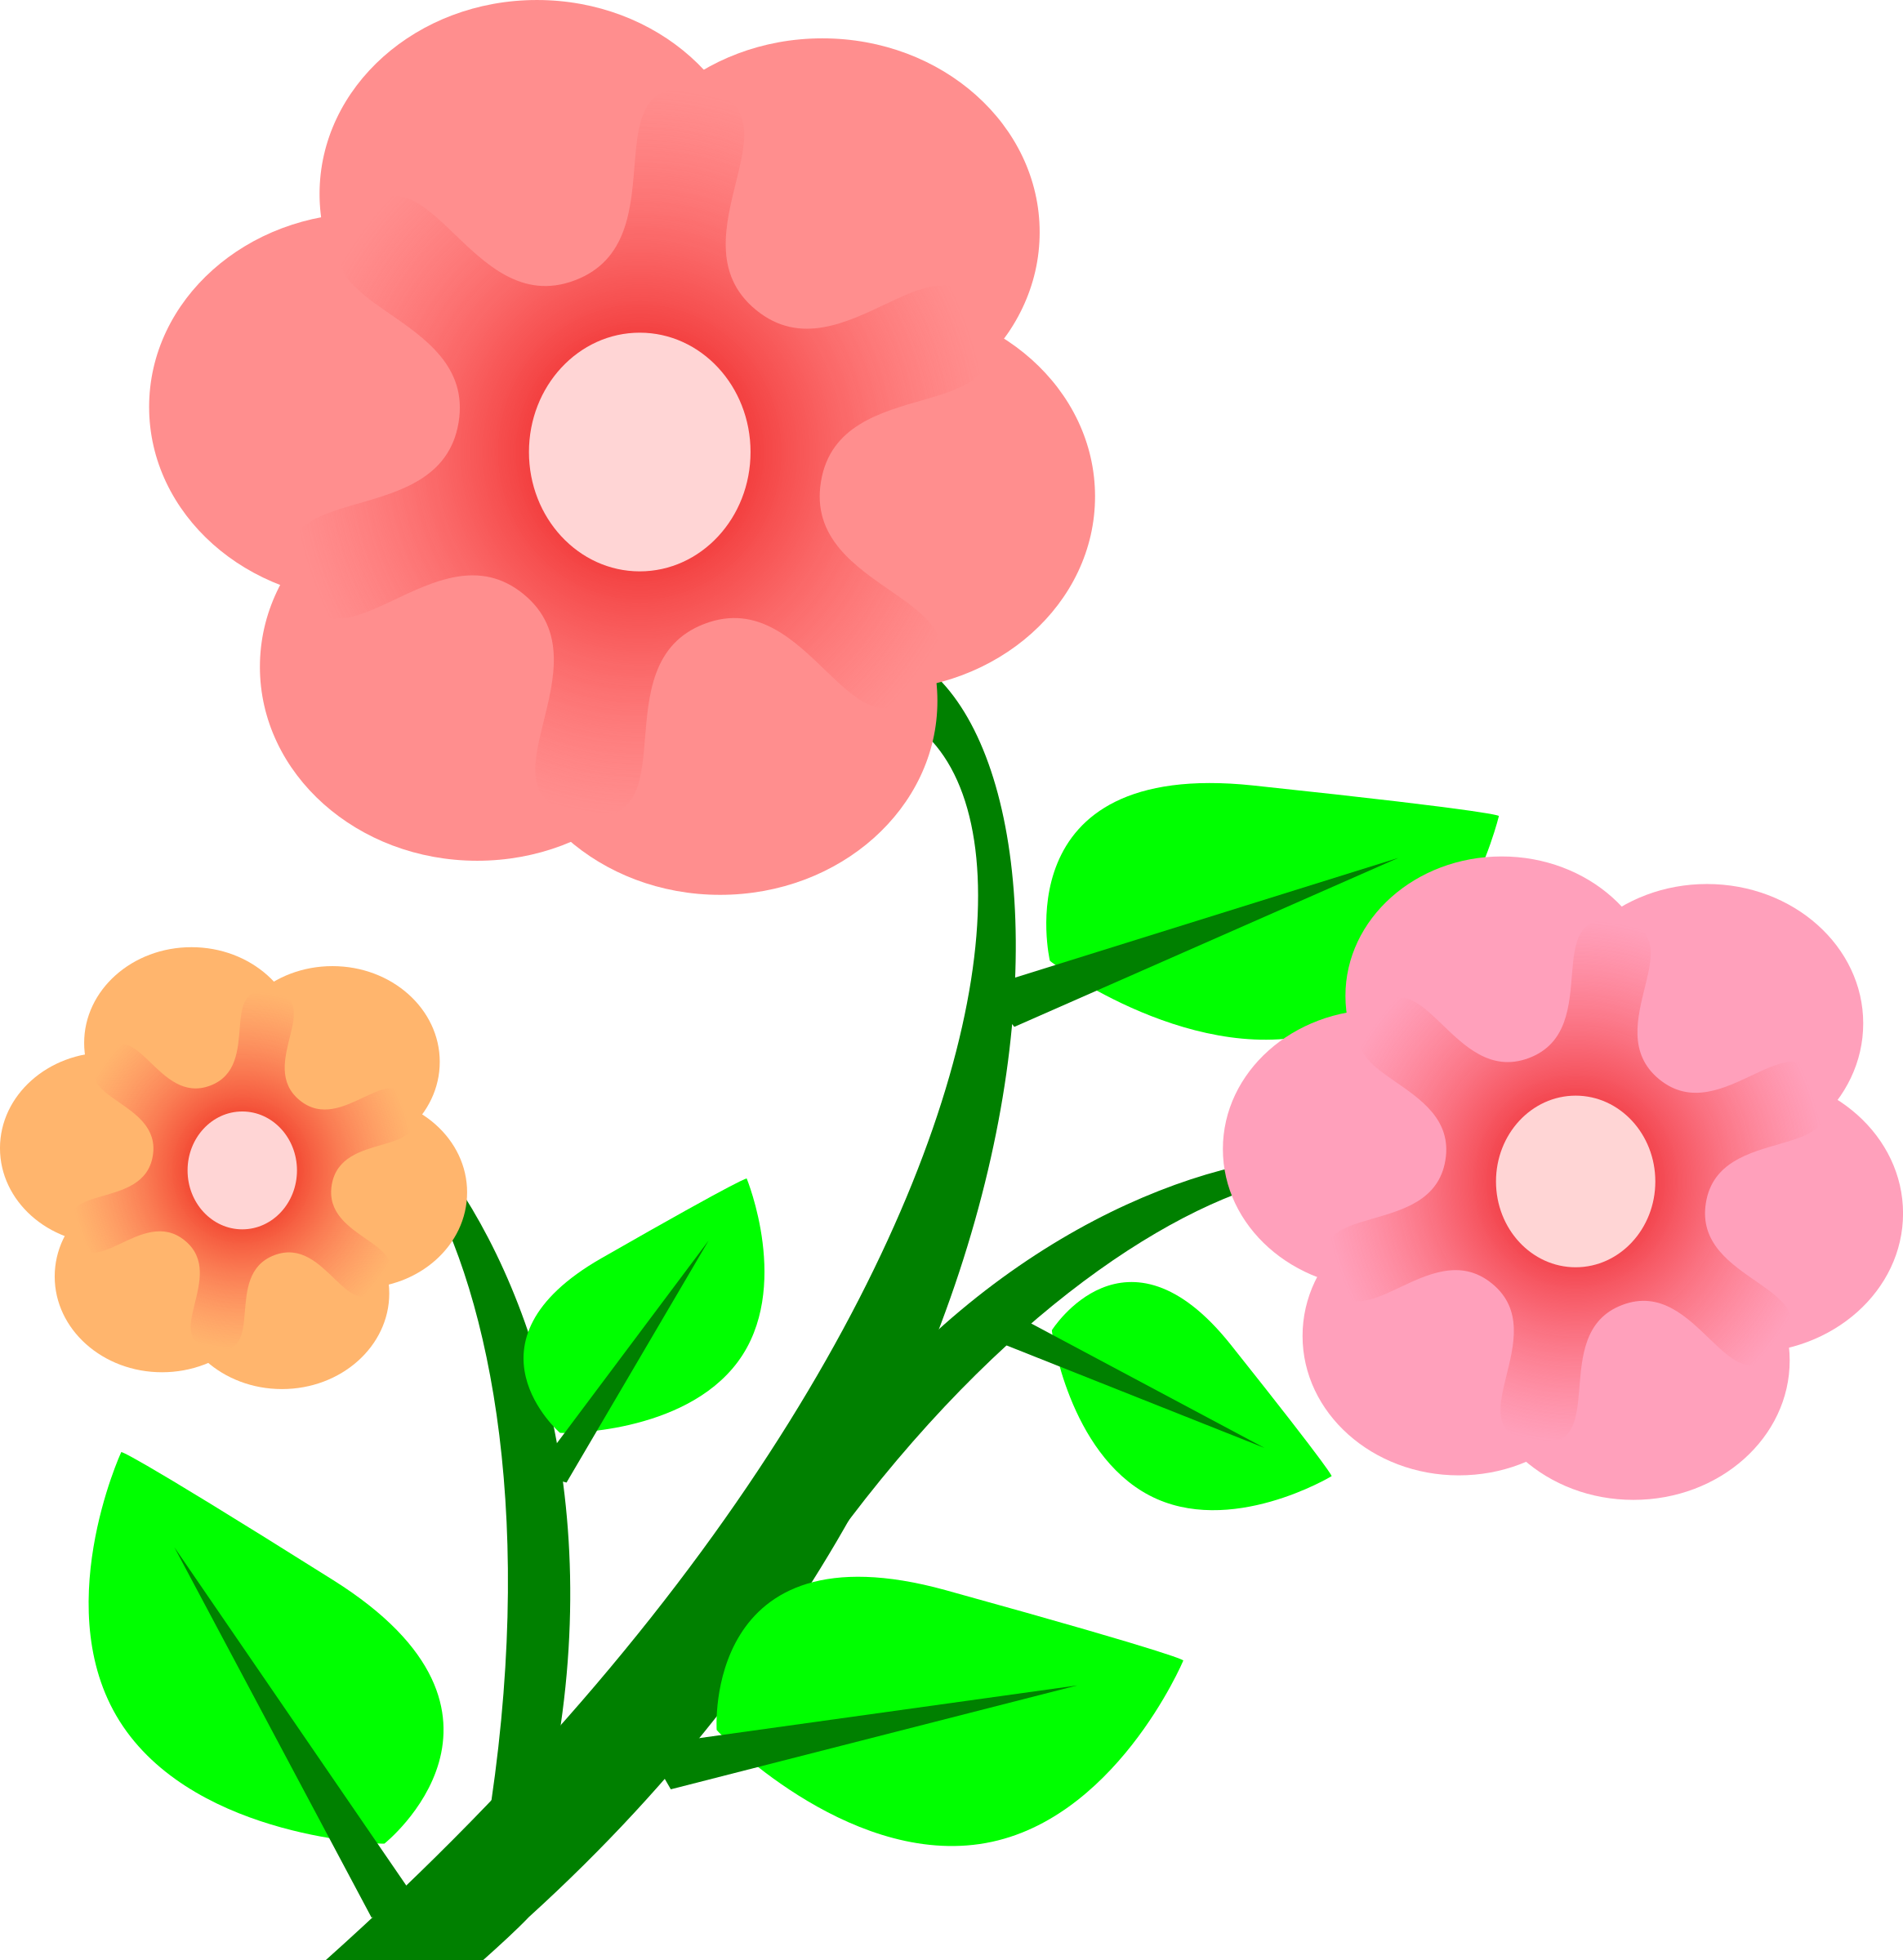 Flores cartoon png. Flower clipart at getdrawings